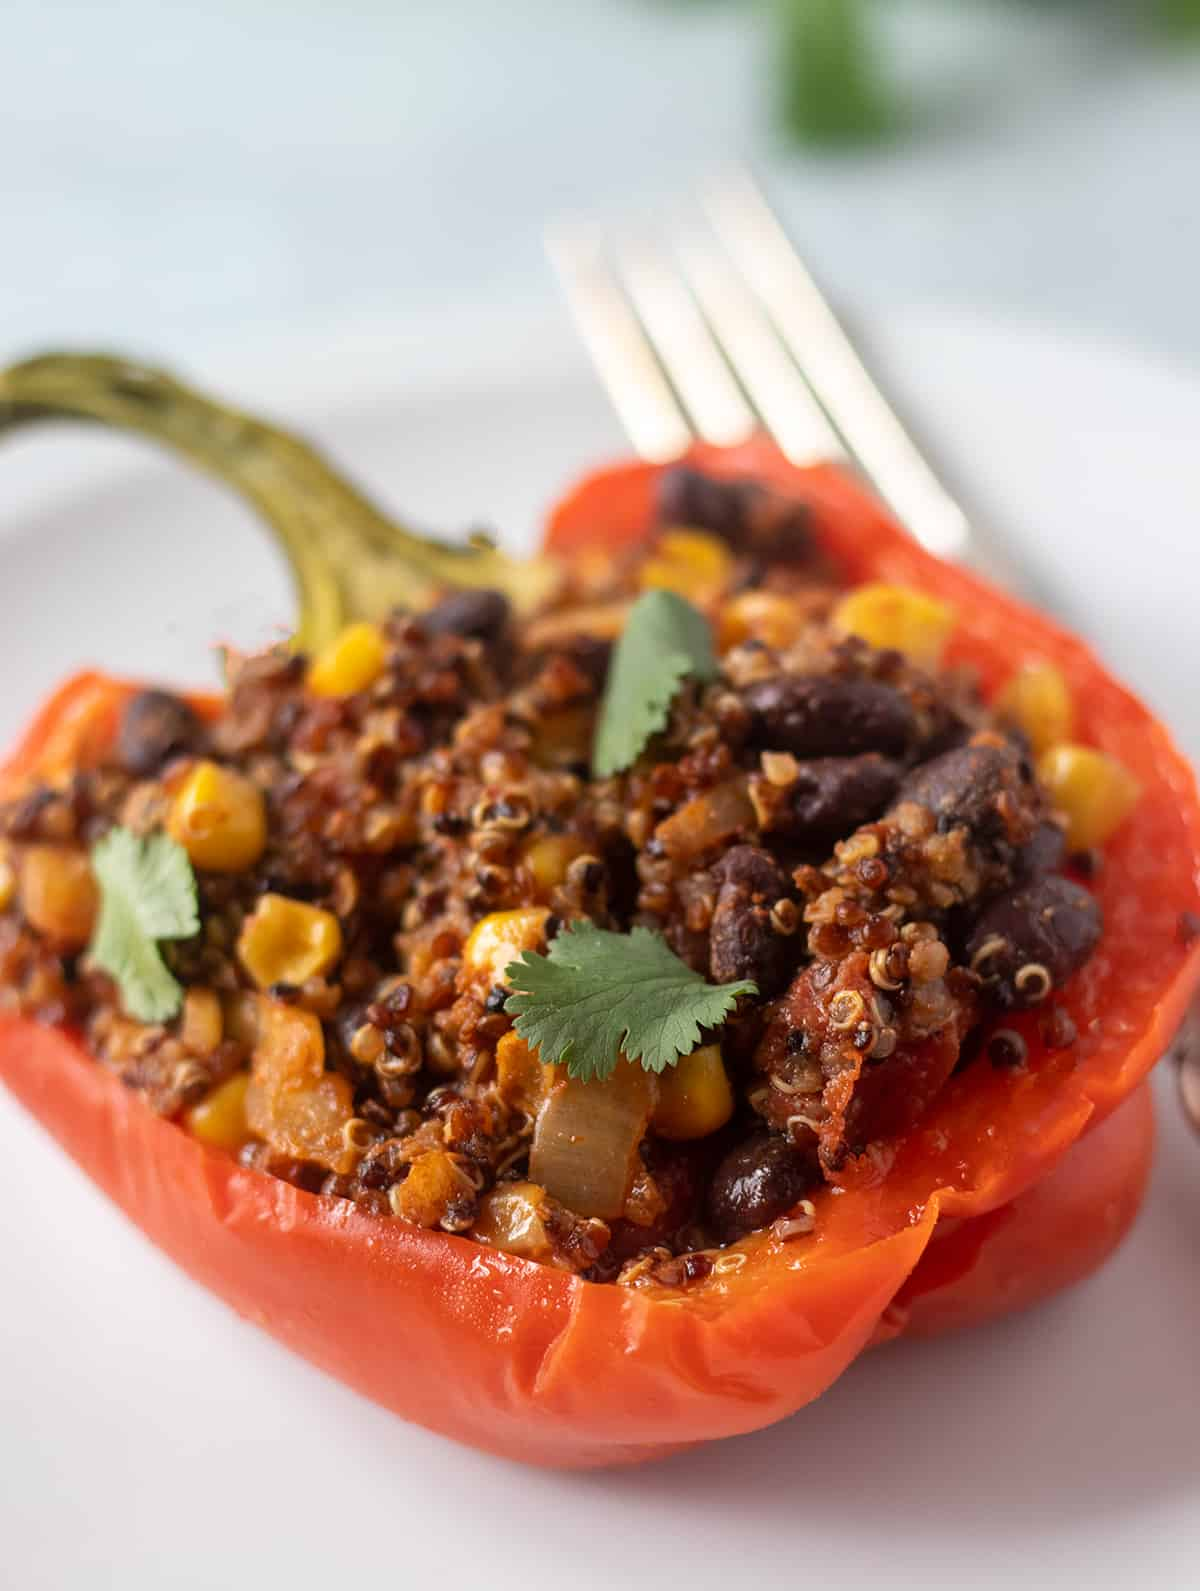 stuffed red bell pepper on white plate with silver fork